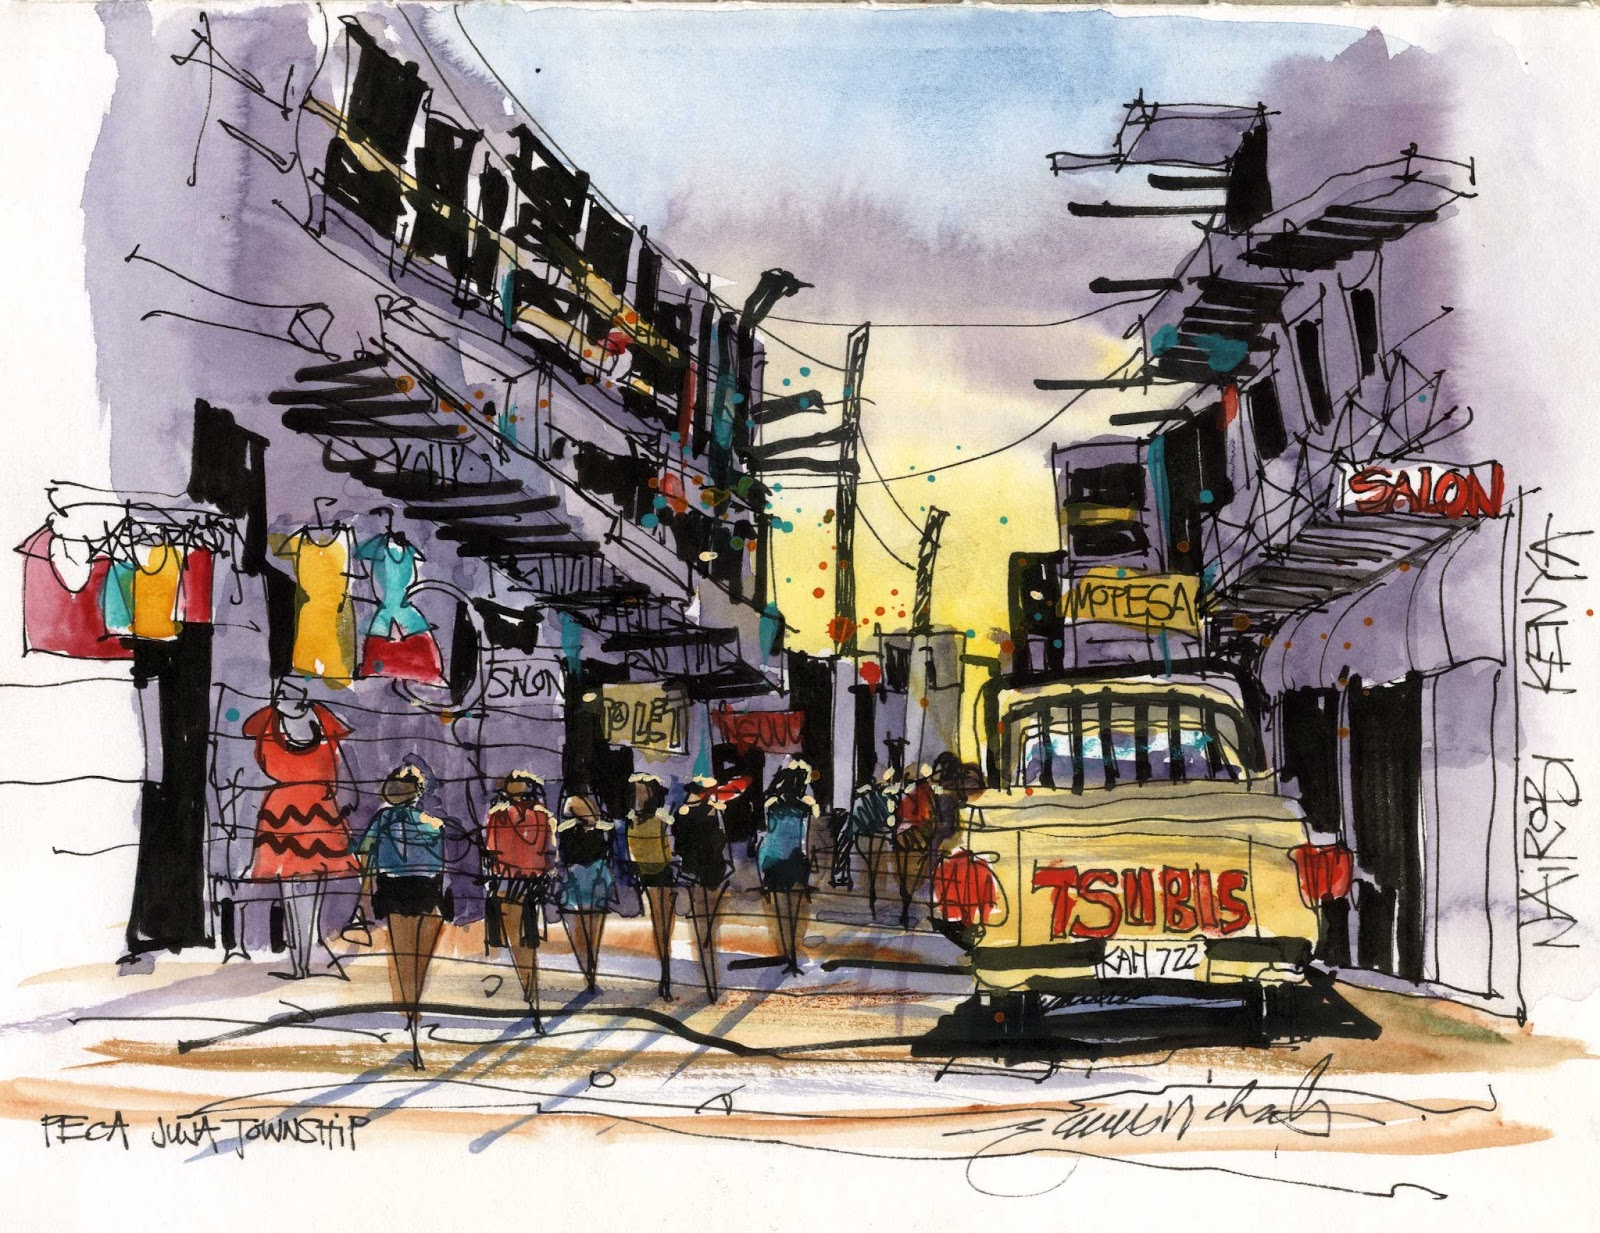 My sketch of street life in peca juja township just outside the gates of jomo kenyetta university this was the site of the sketchwalk with students